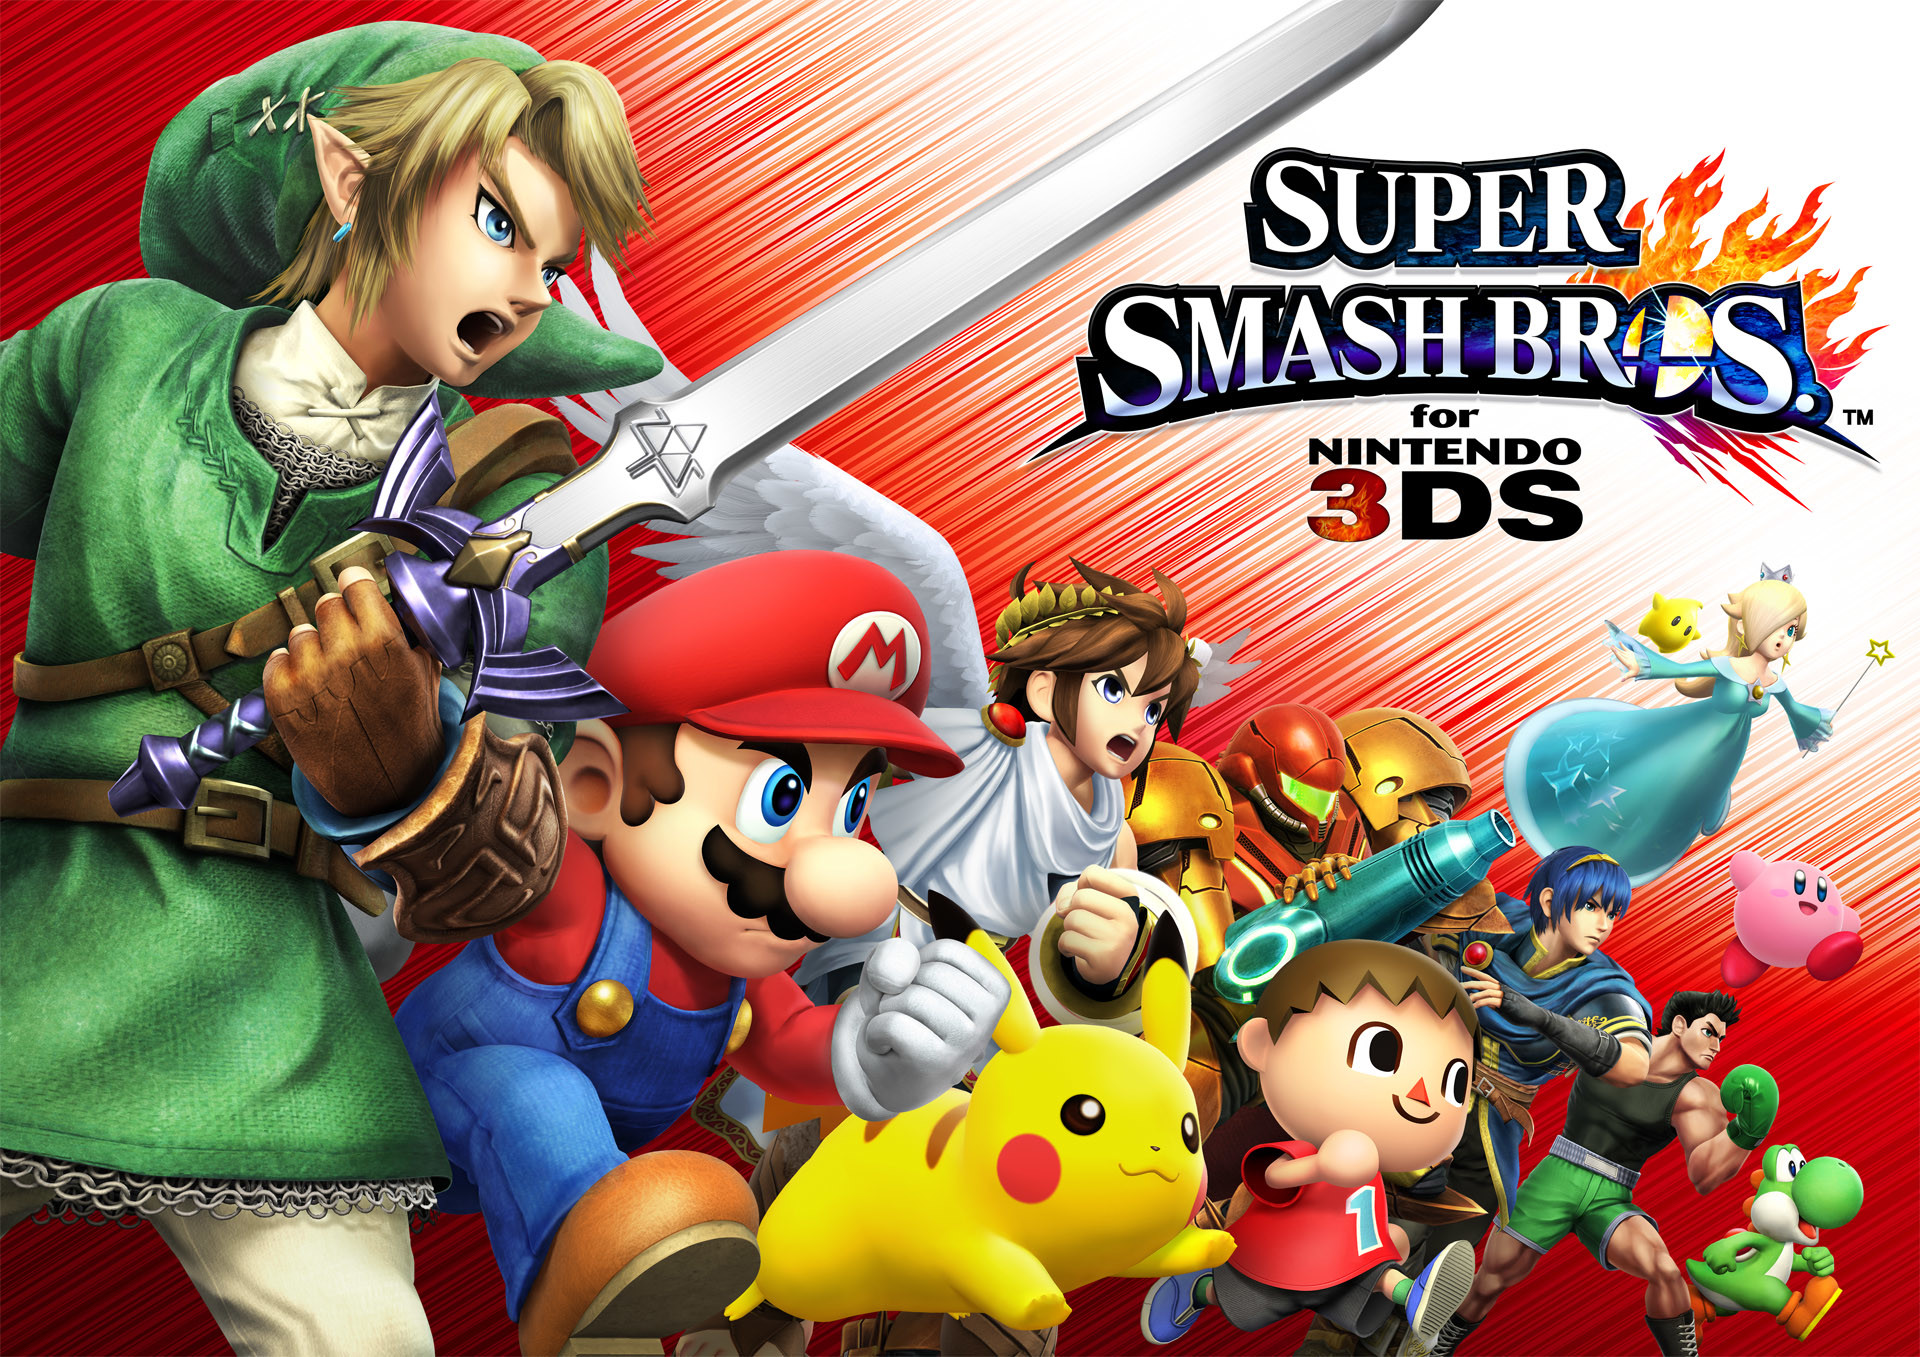 All contents for Super Smash Bros. for Nintendo 3DS on 3DS